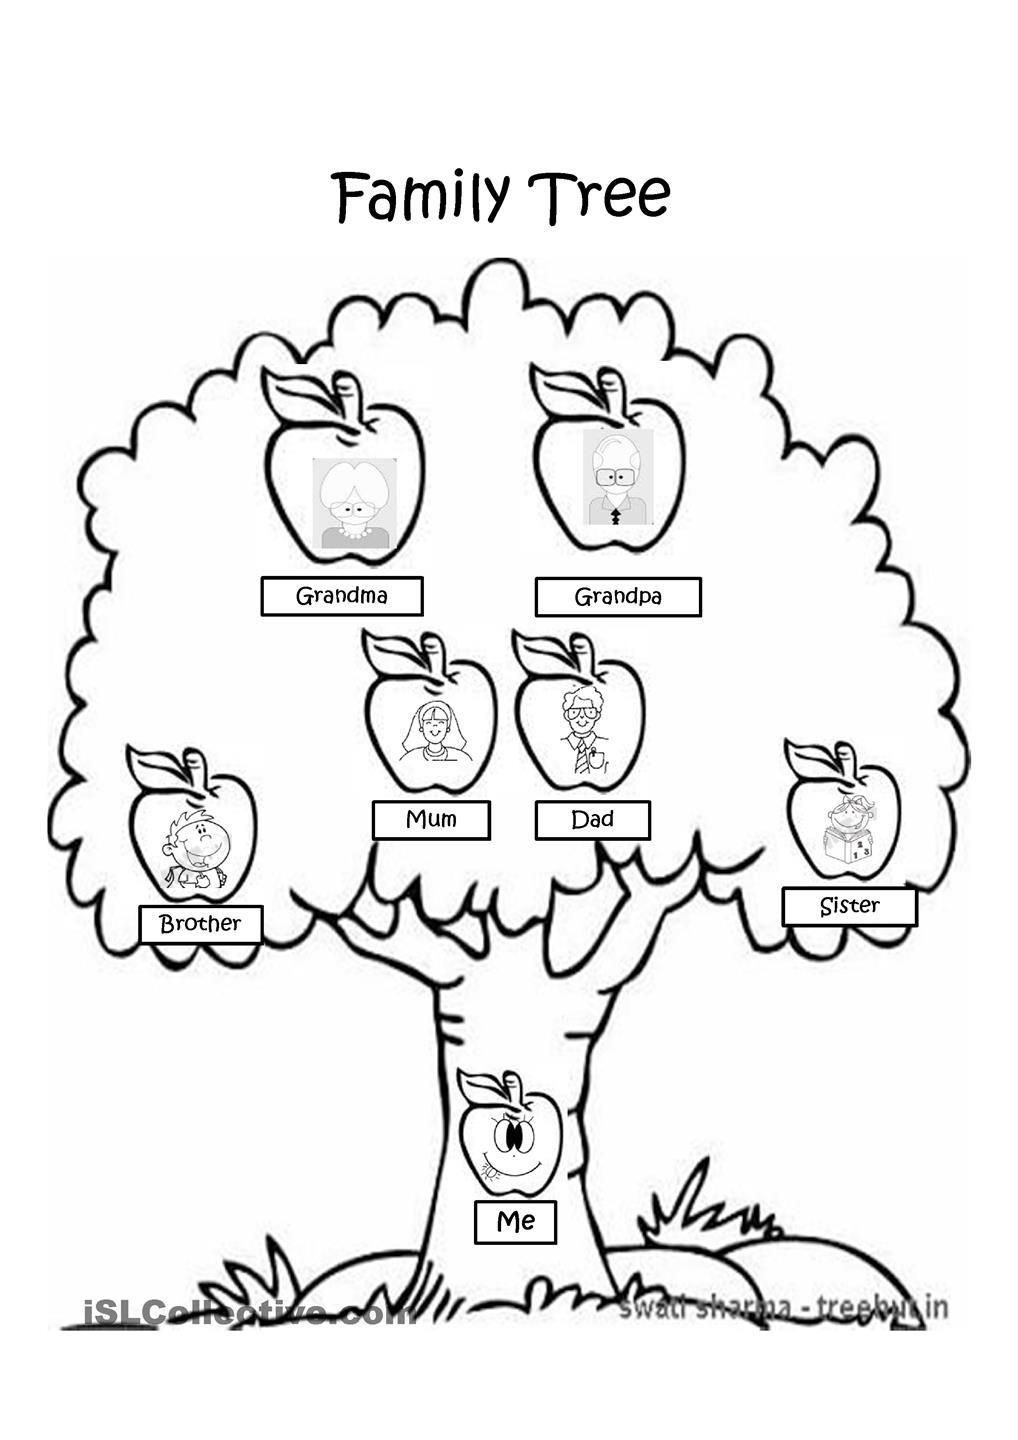 1018x1440 Family Tree Clipart Black And White Black And White Family Tree